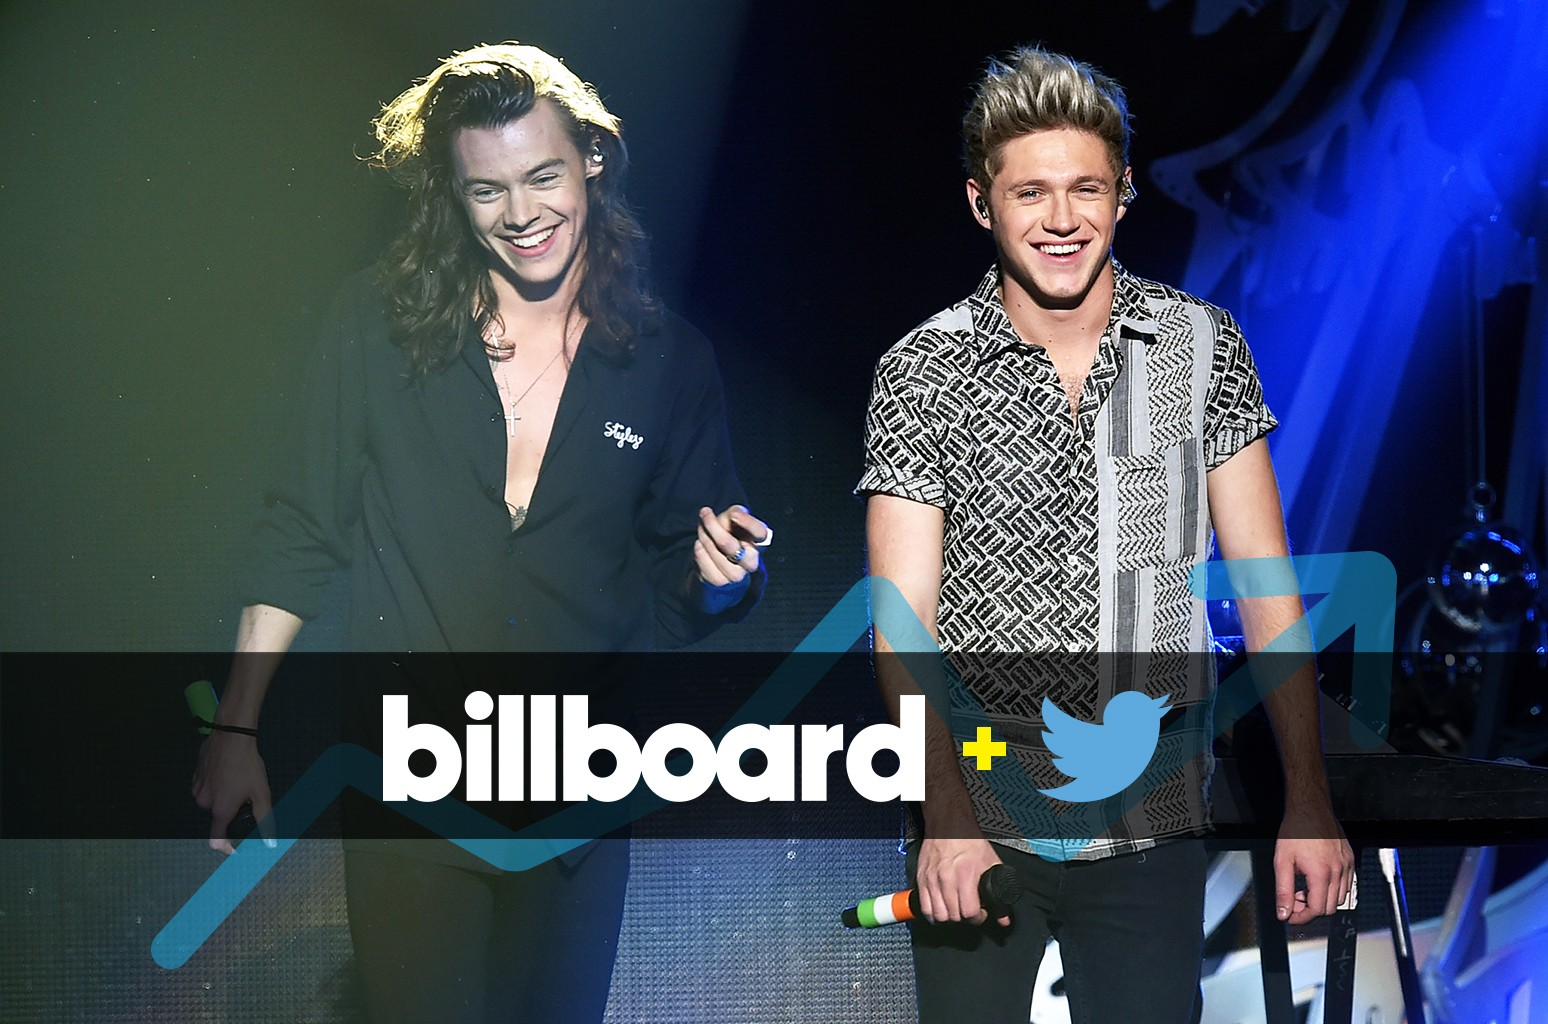 Harry Styles and Niall Horan performs at Staples Center on Dec. 4, 2015 in Los Angeles.